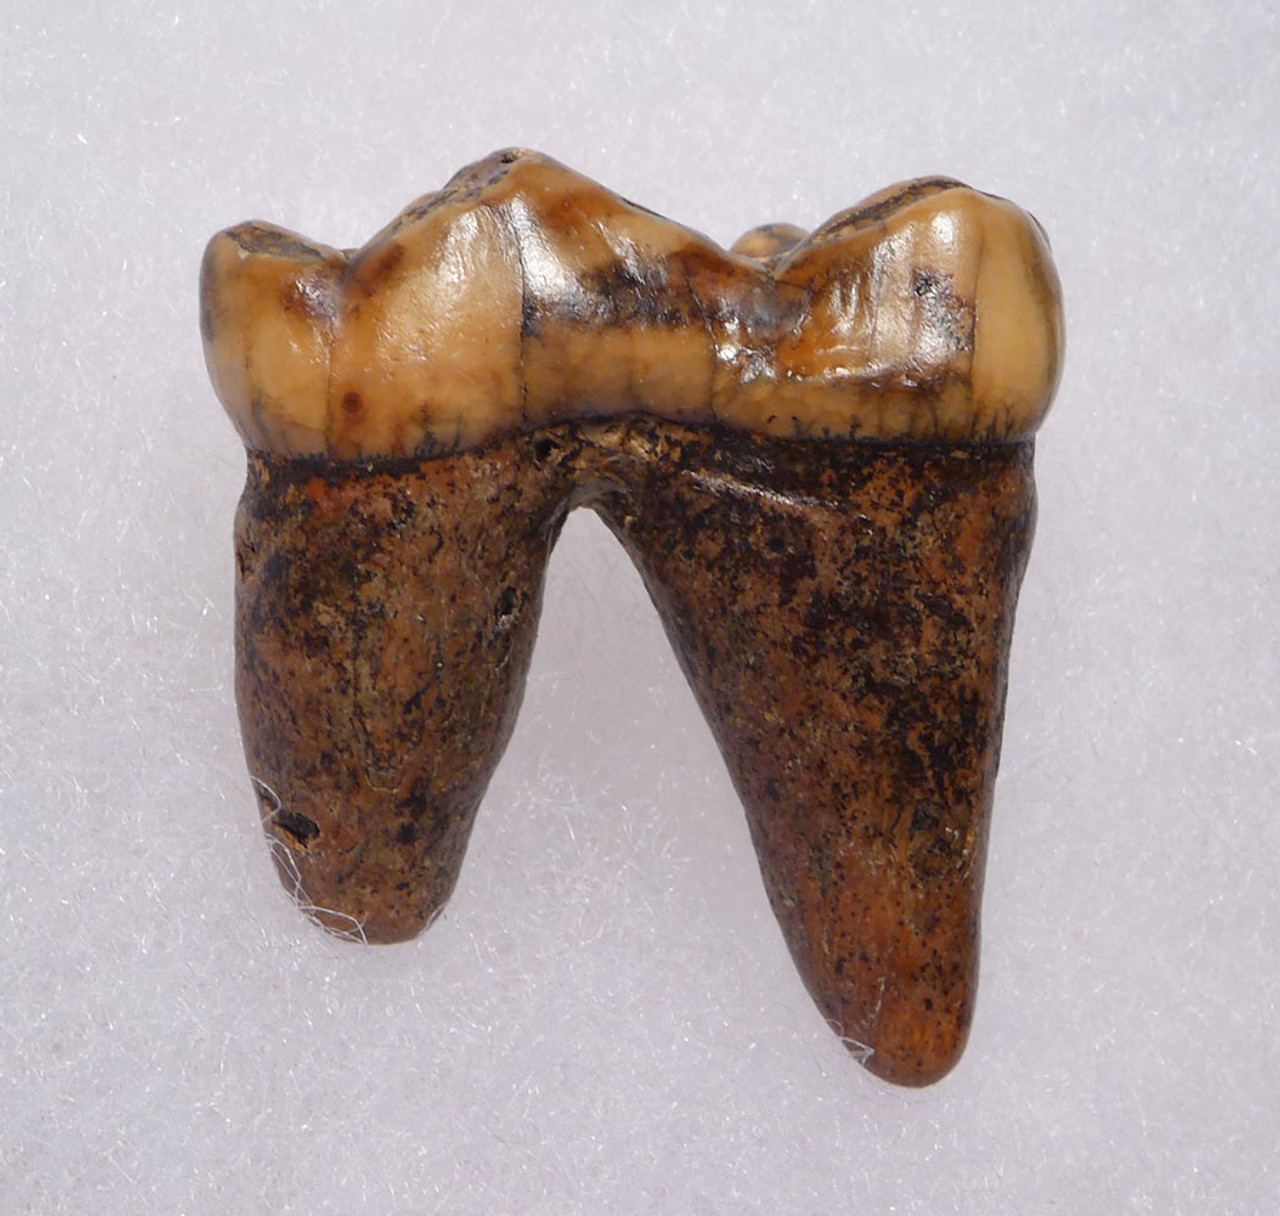 CAVE BEAR FOSSIL MOLAR TOOTH WITH ROOT AND DECAY CAVITY FROM FAMOUS DRACHENHOHLE DRAGONS CAVE AUSTRIA  *LM40-194